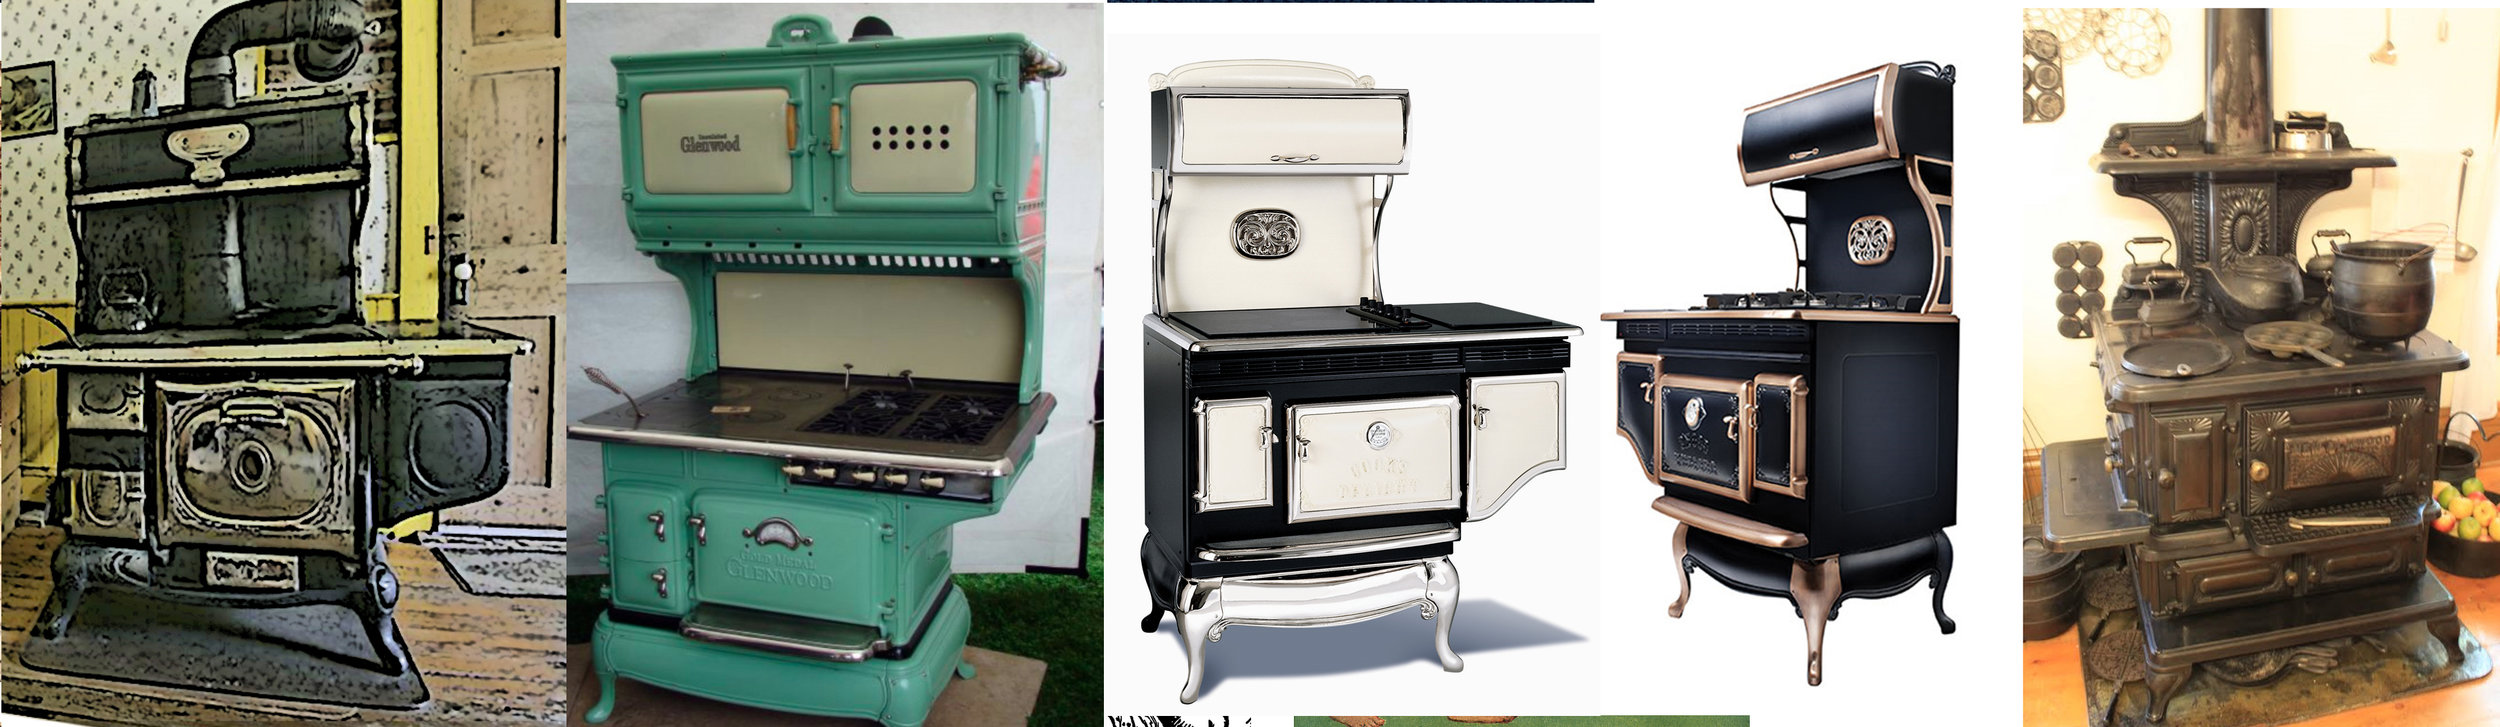 blog stoves.jpg